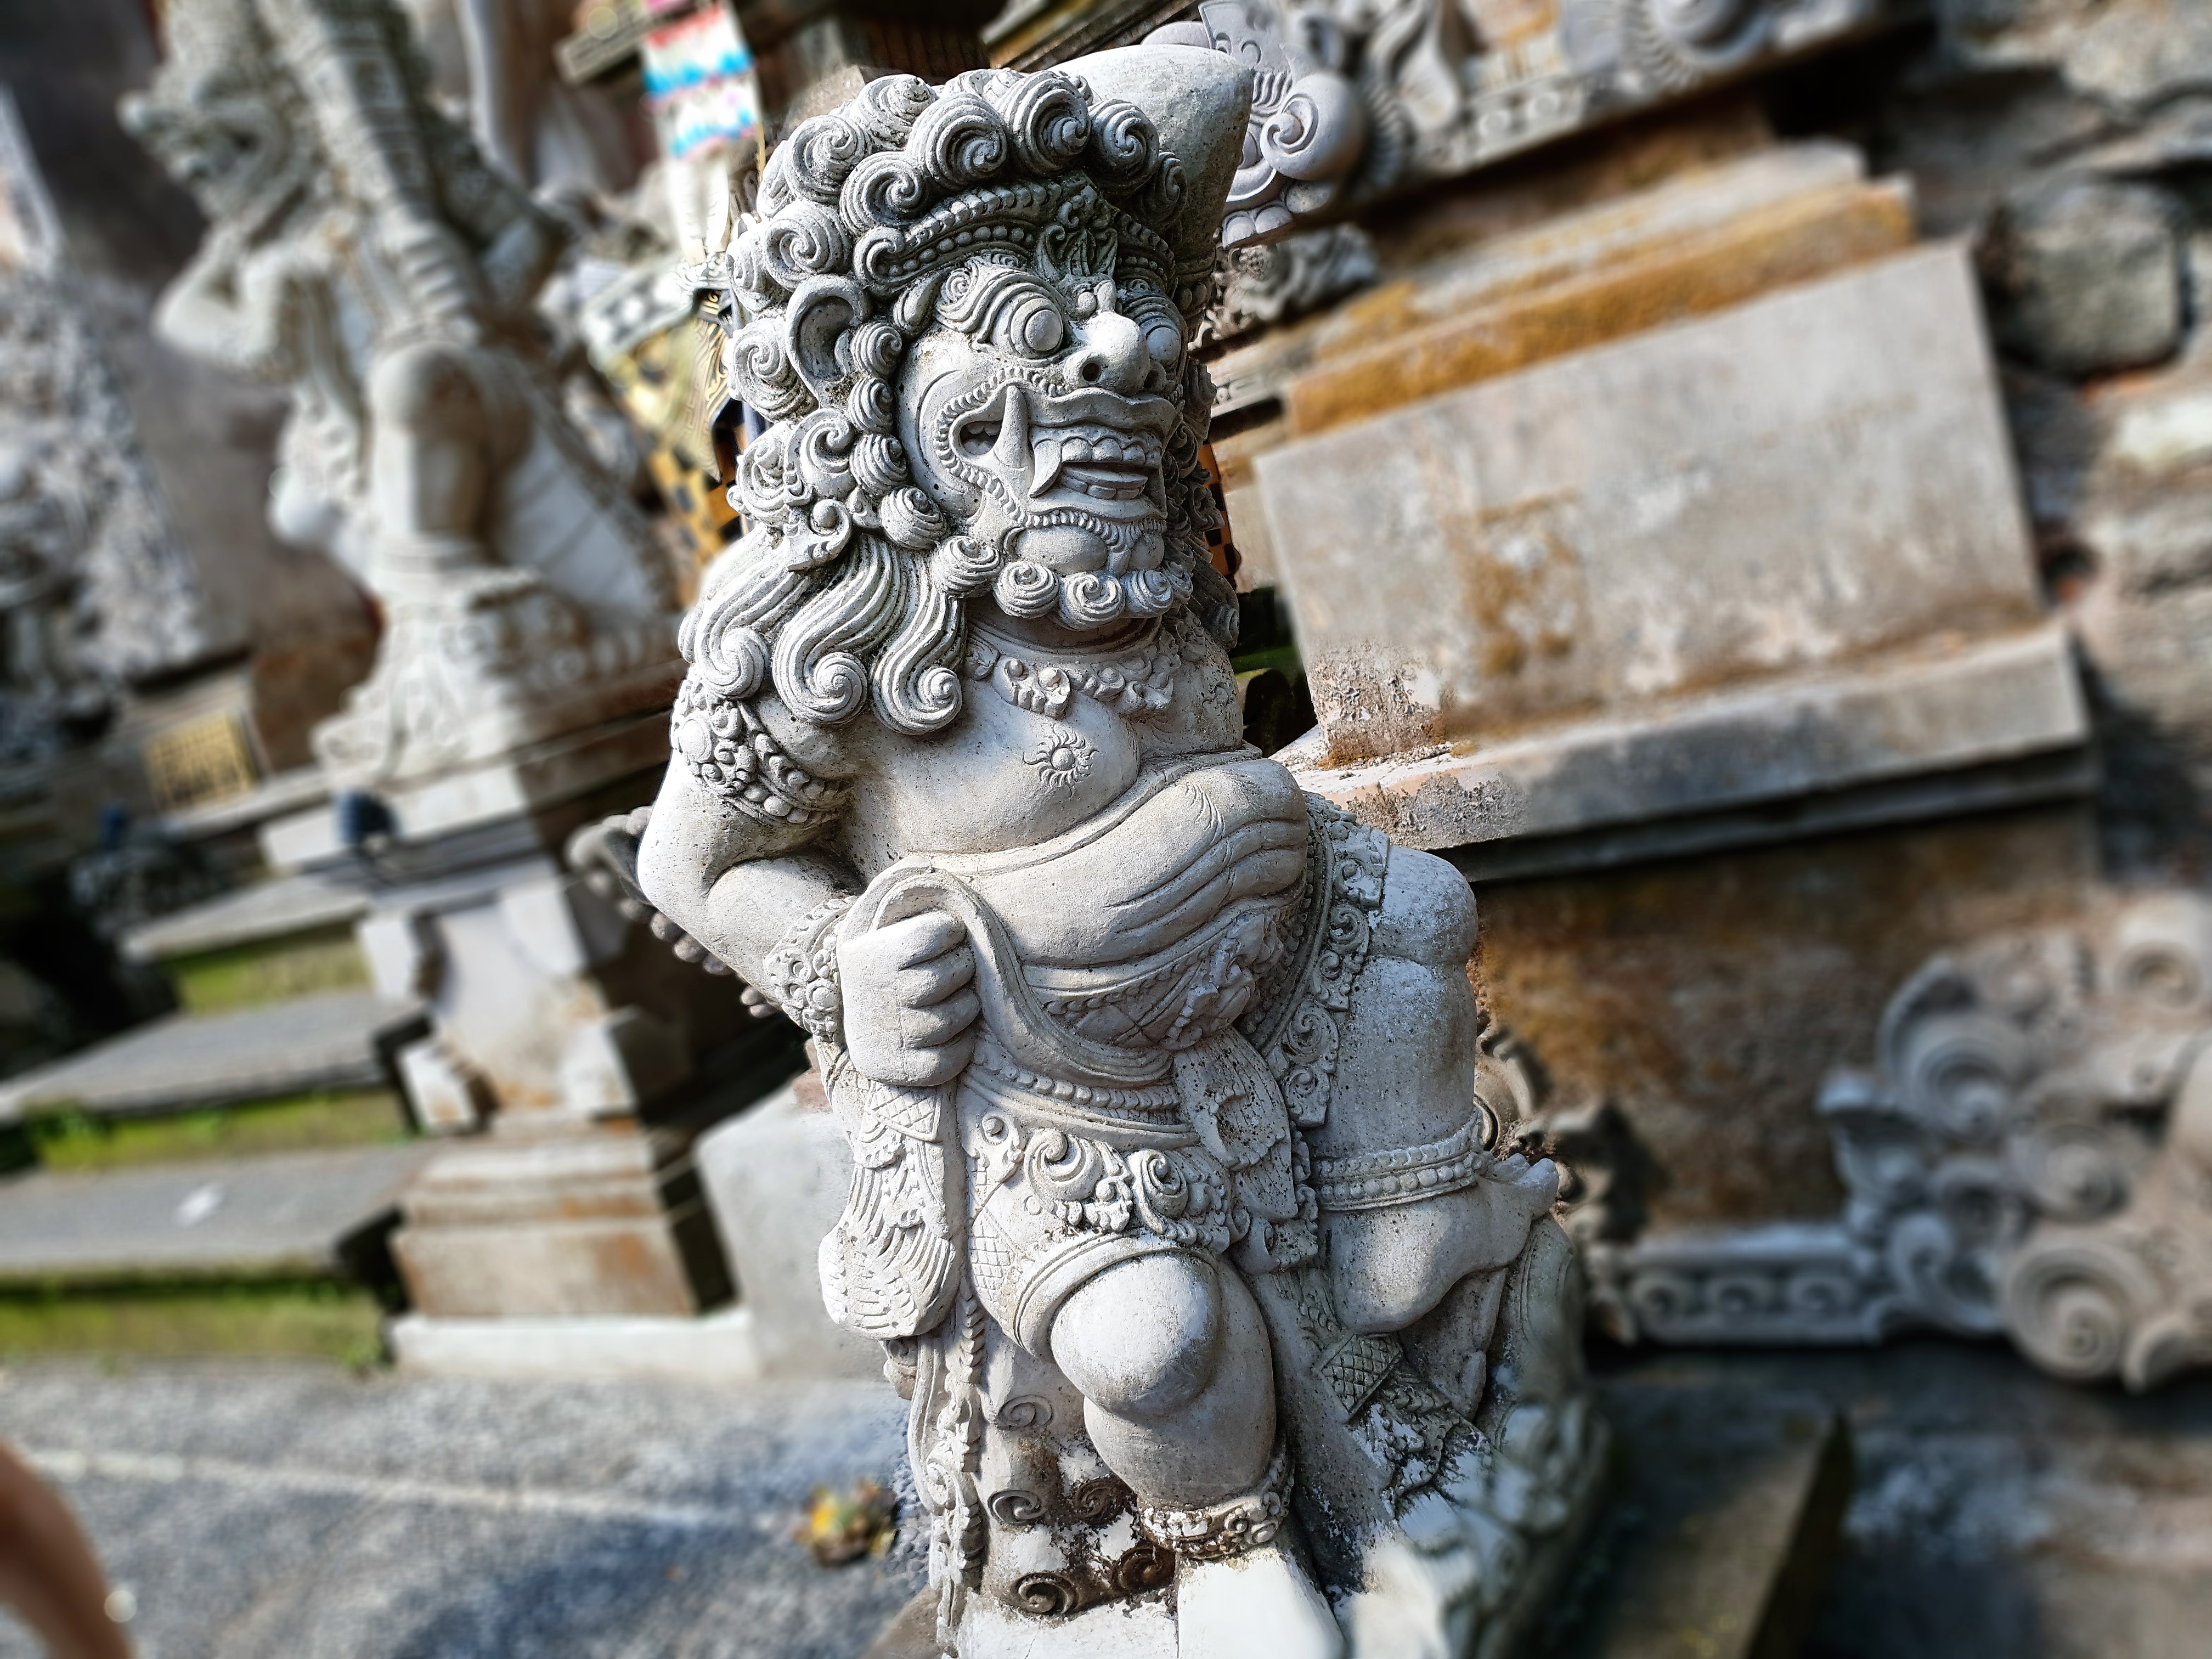 What haven't I told so far about Bali?- Part 1, Ubud.